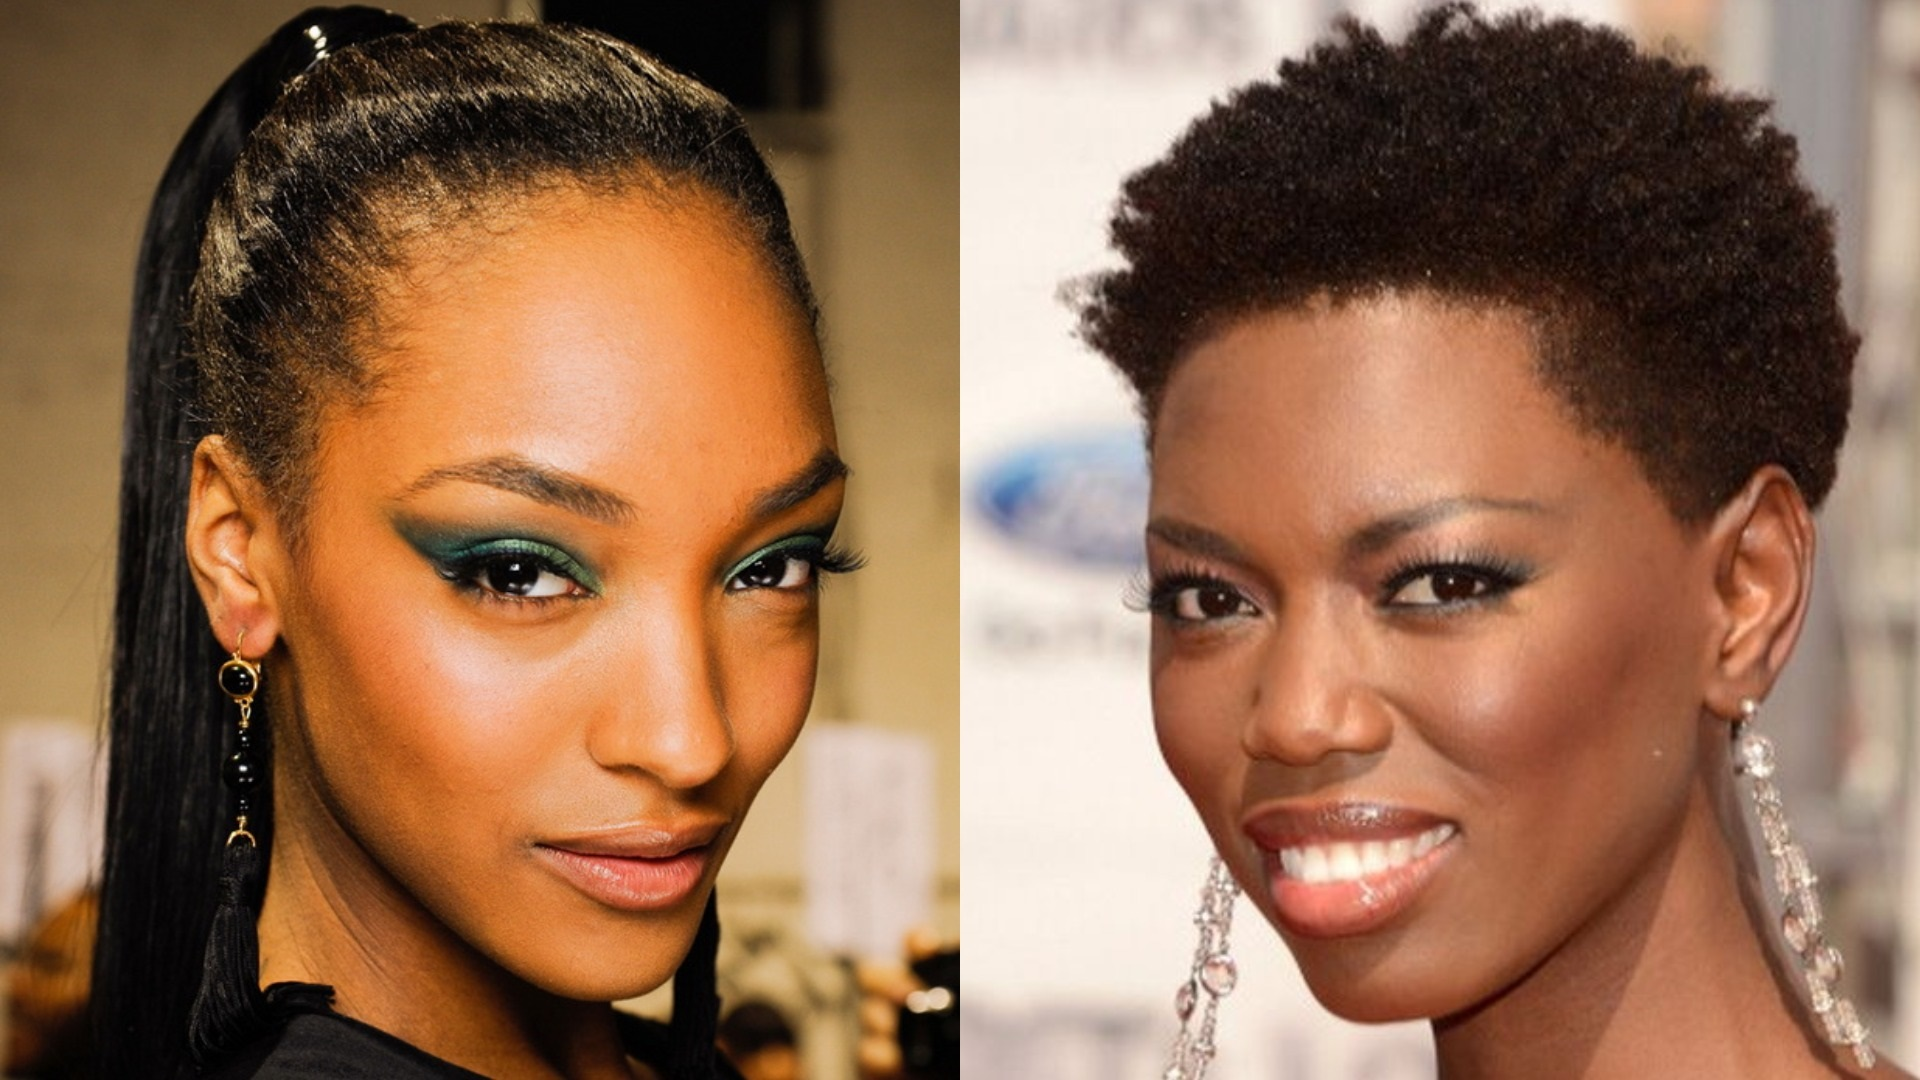 Cute-Hairstyles-for-Black-Women Charming and Cute Hairstyles for Black Women